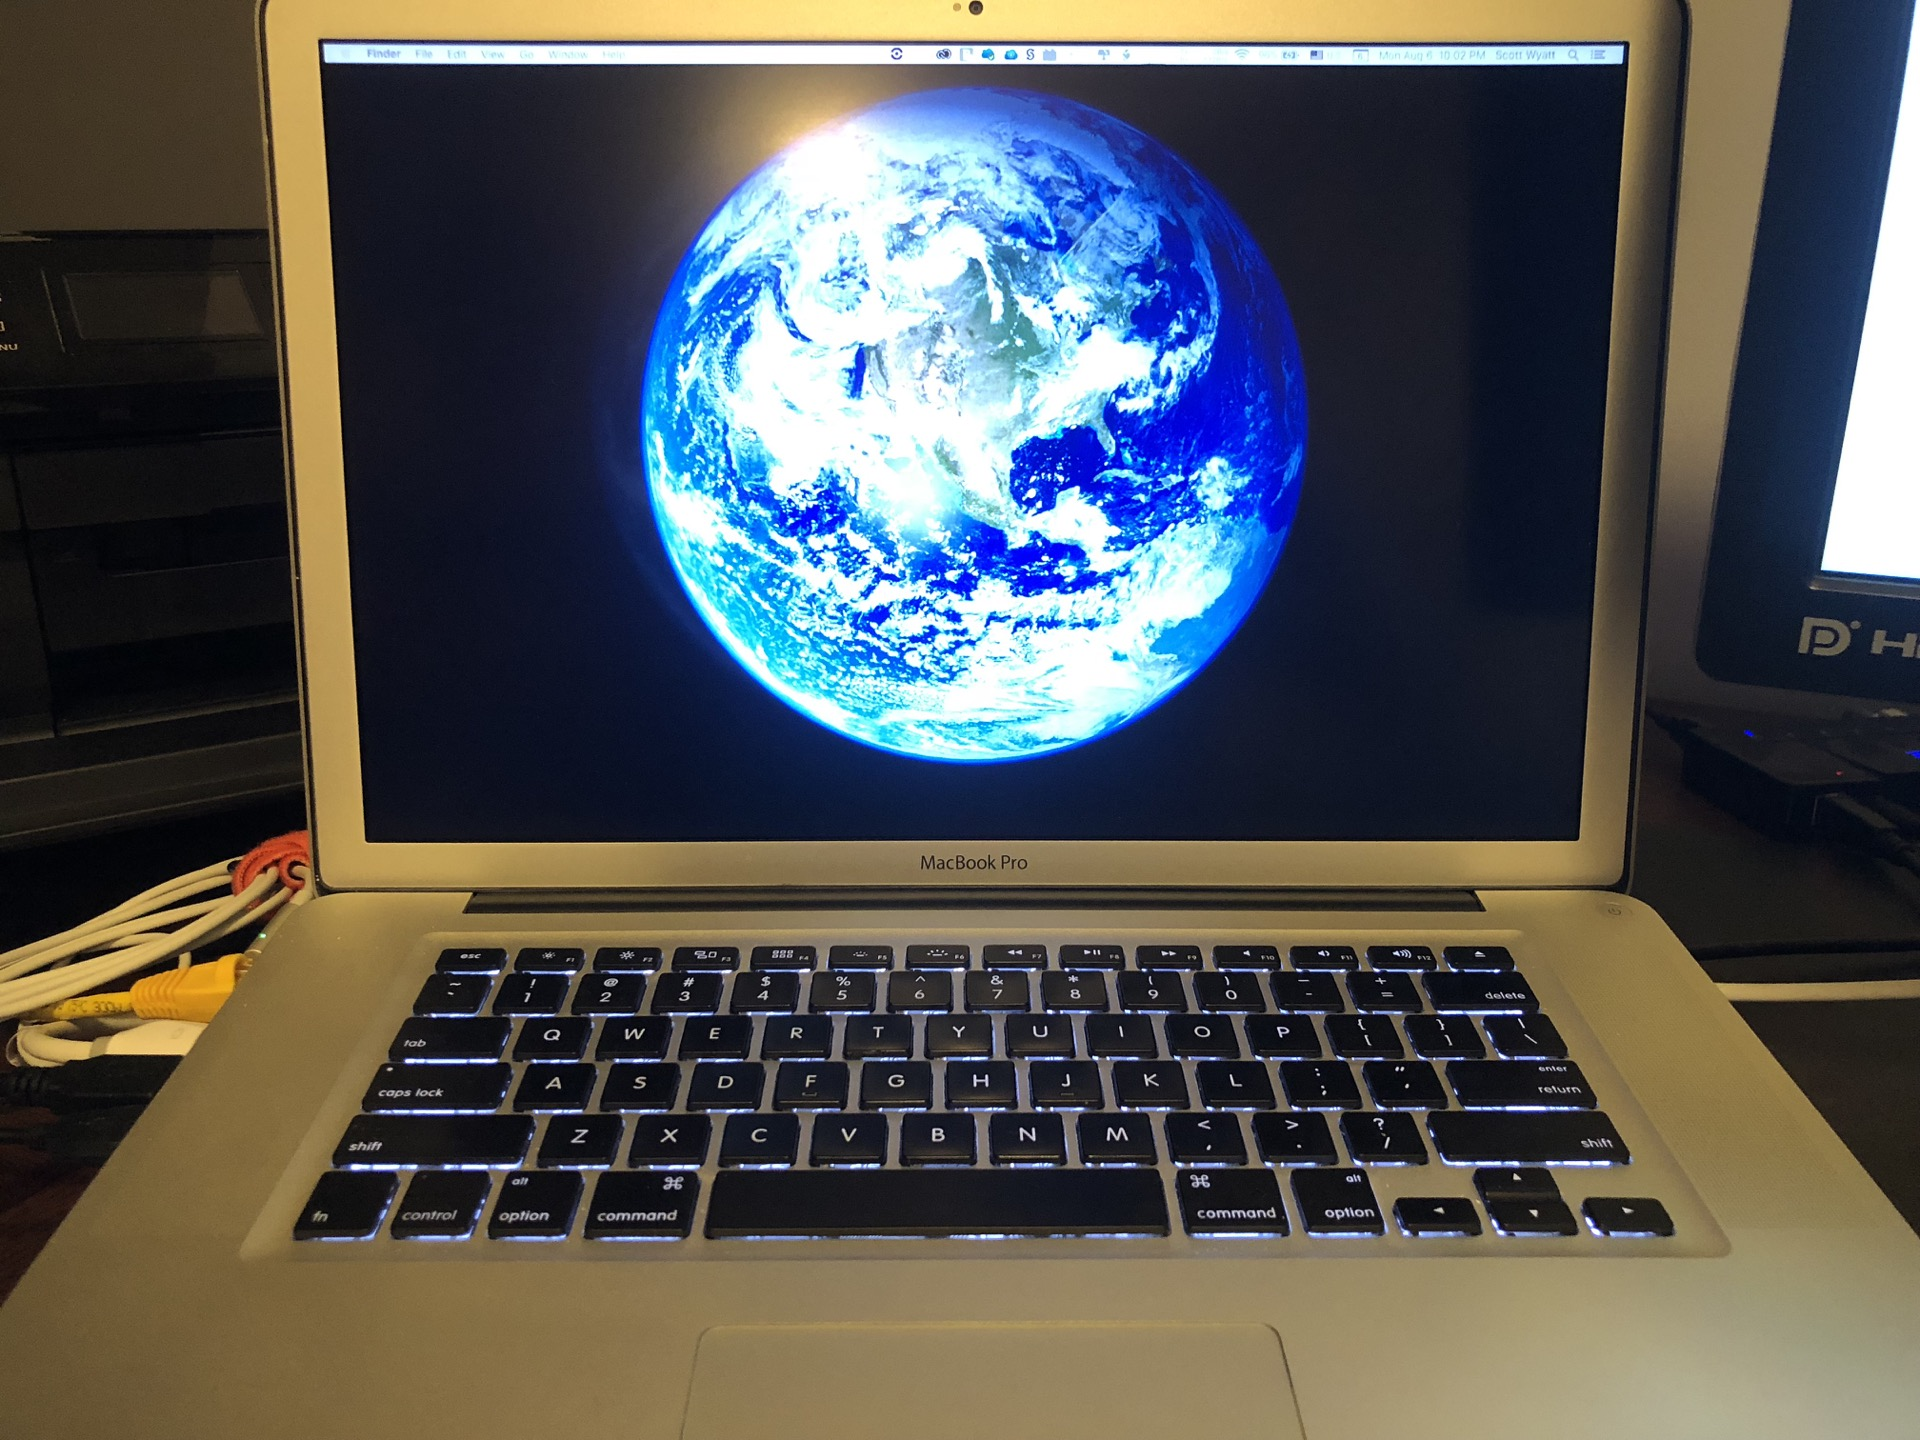 Scott's MacBook Pro 2012